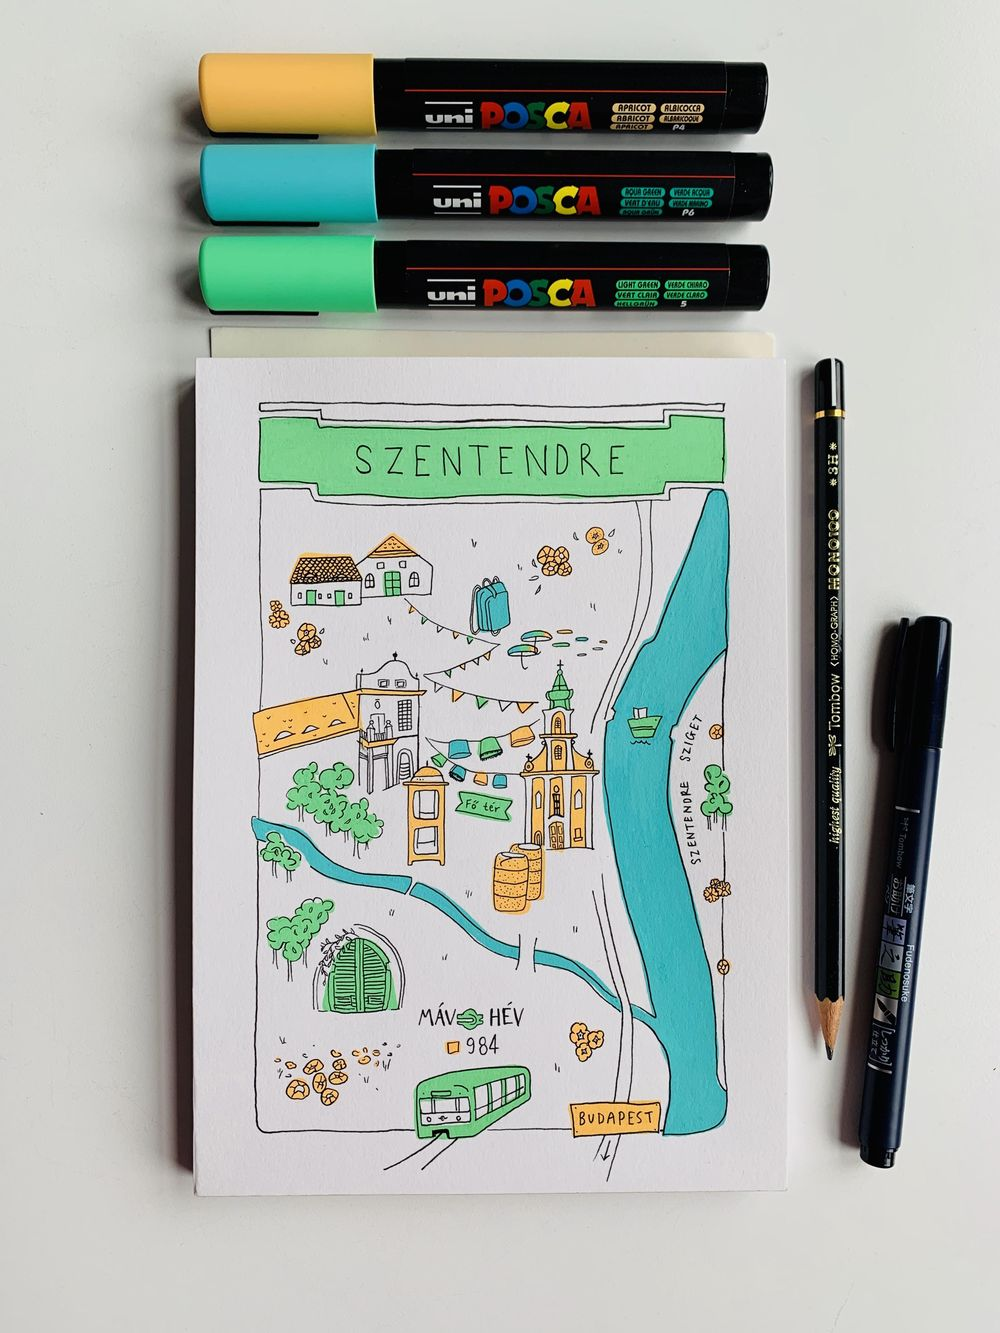 Map of Szentendre, Hungary - image 3 - student project